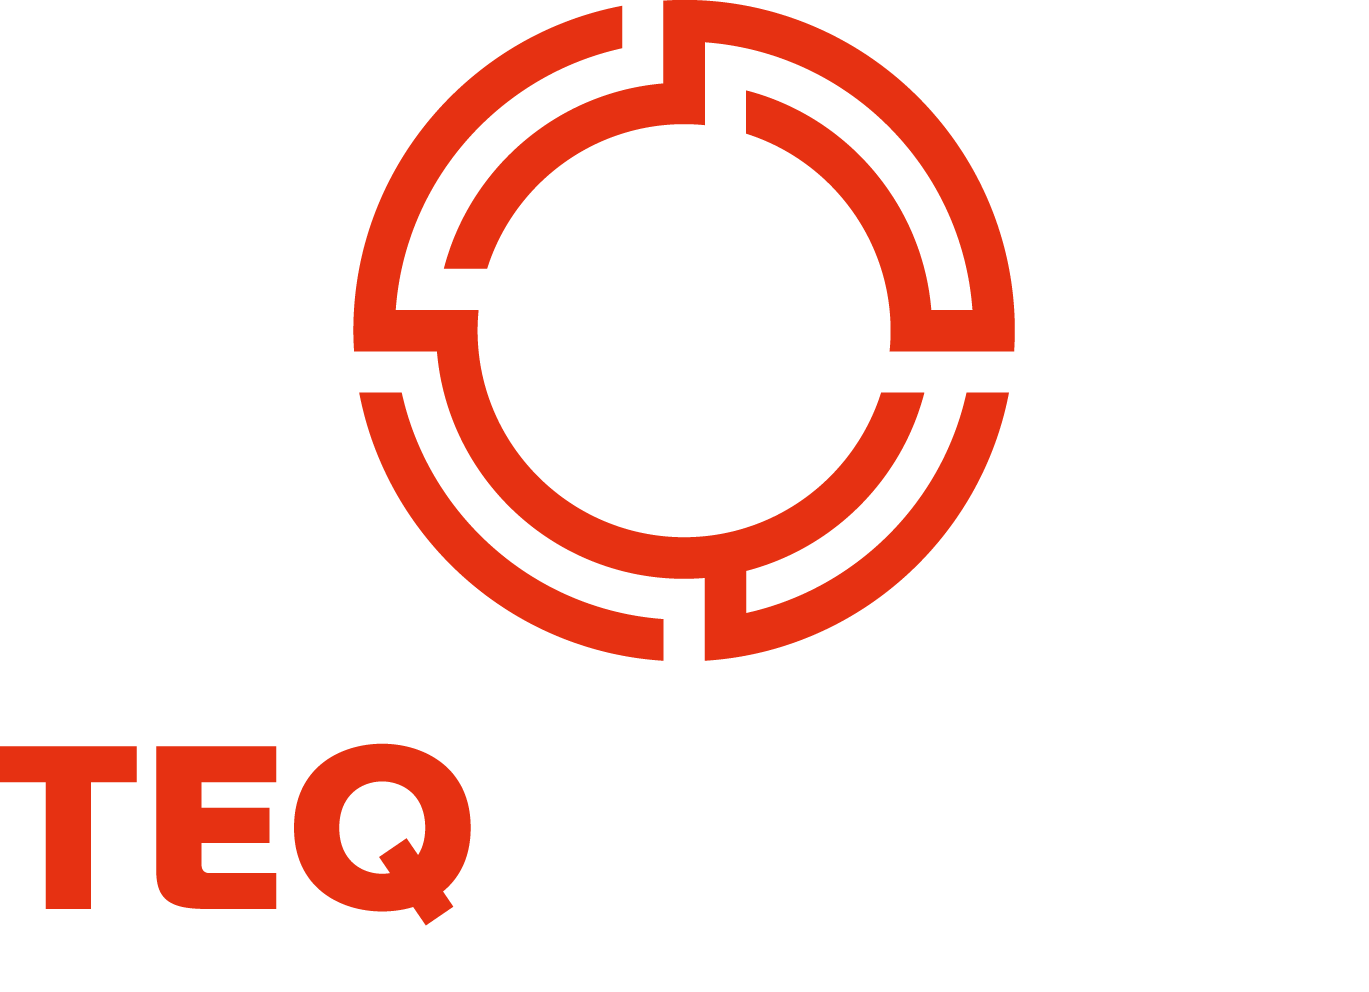 TEQnation 2018 - The Future of IT